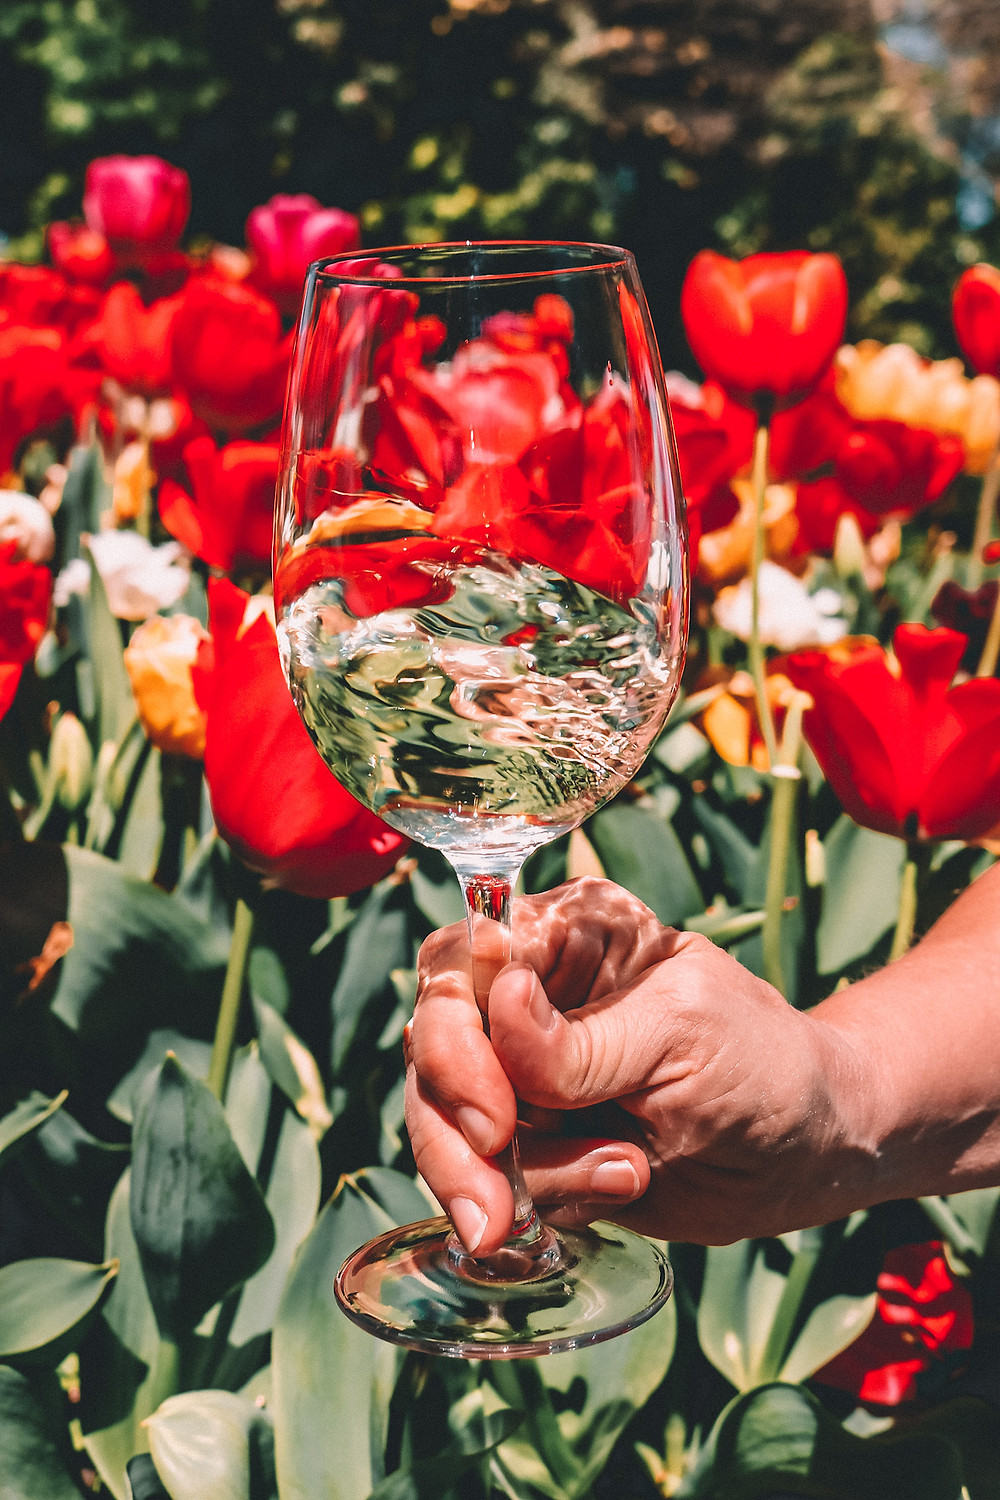 White wine swirling in spring